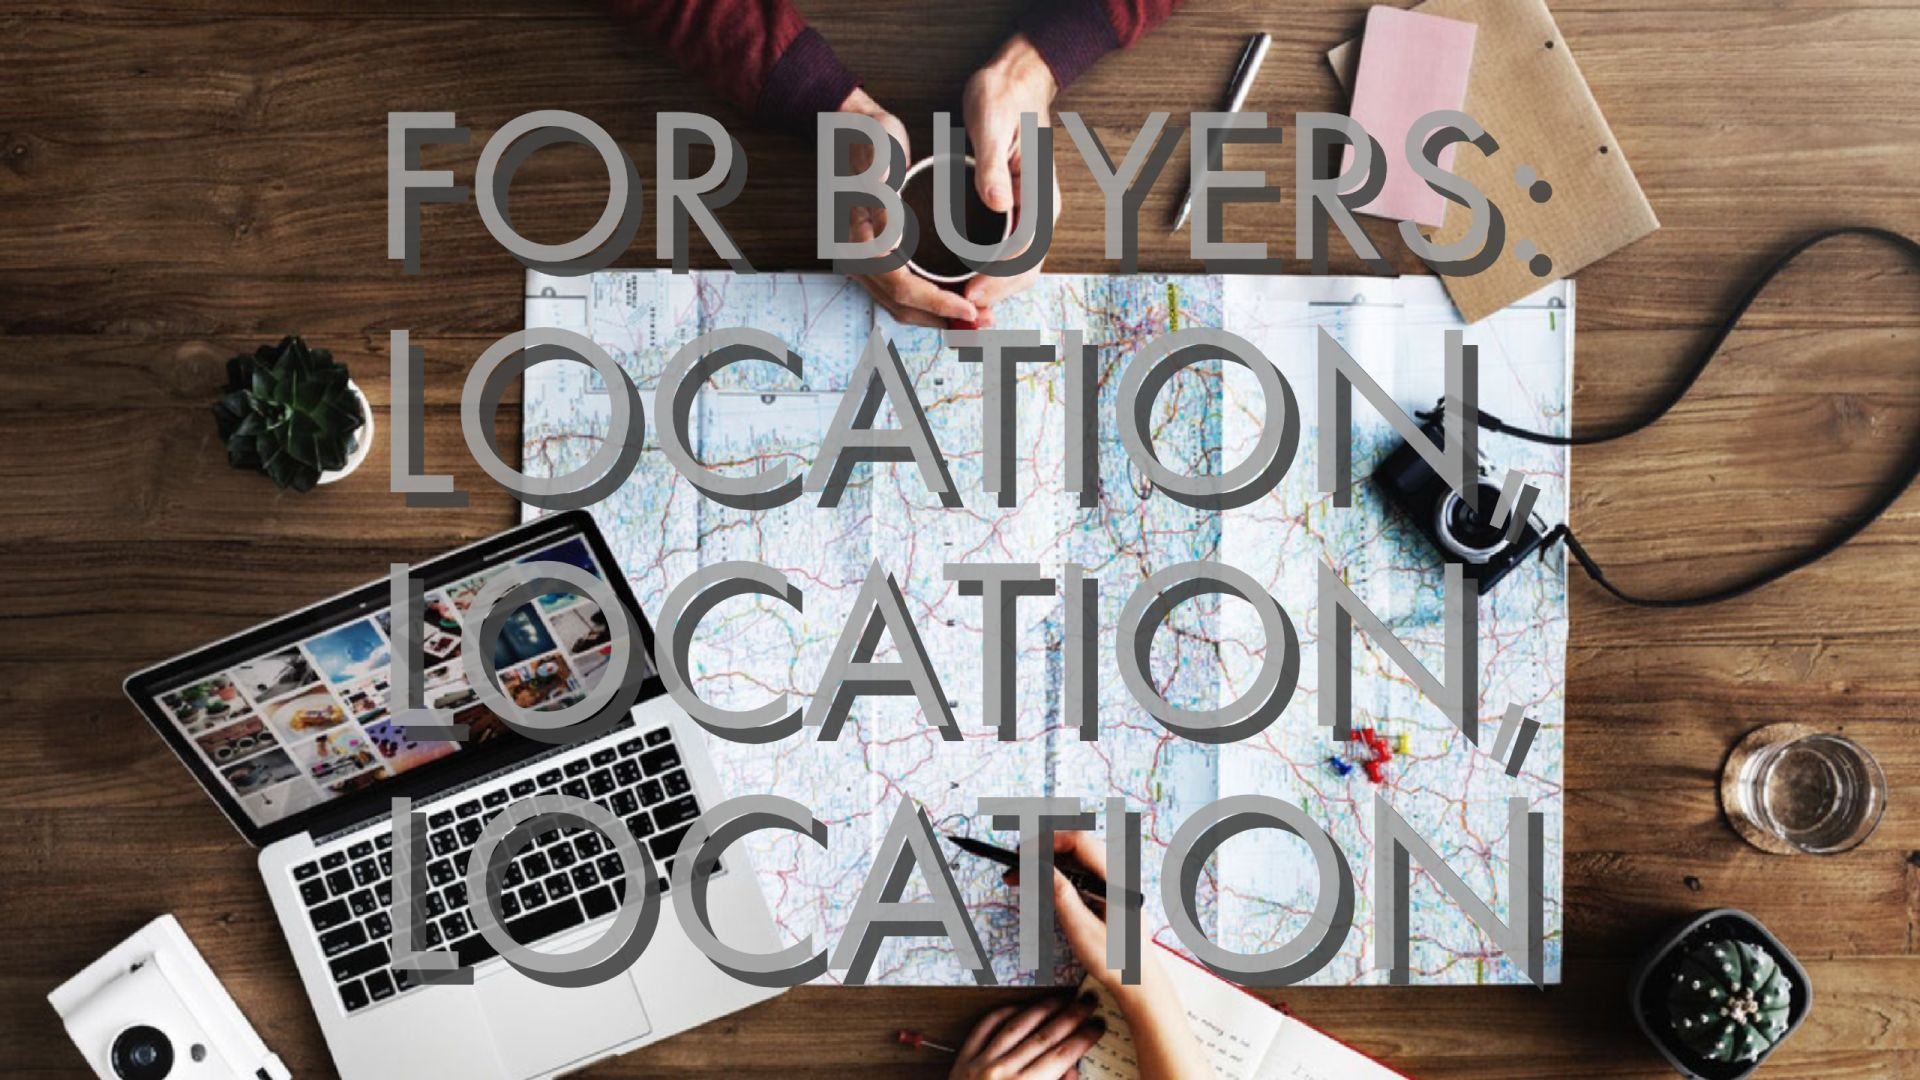 For Buyers: Location, Location, Location